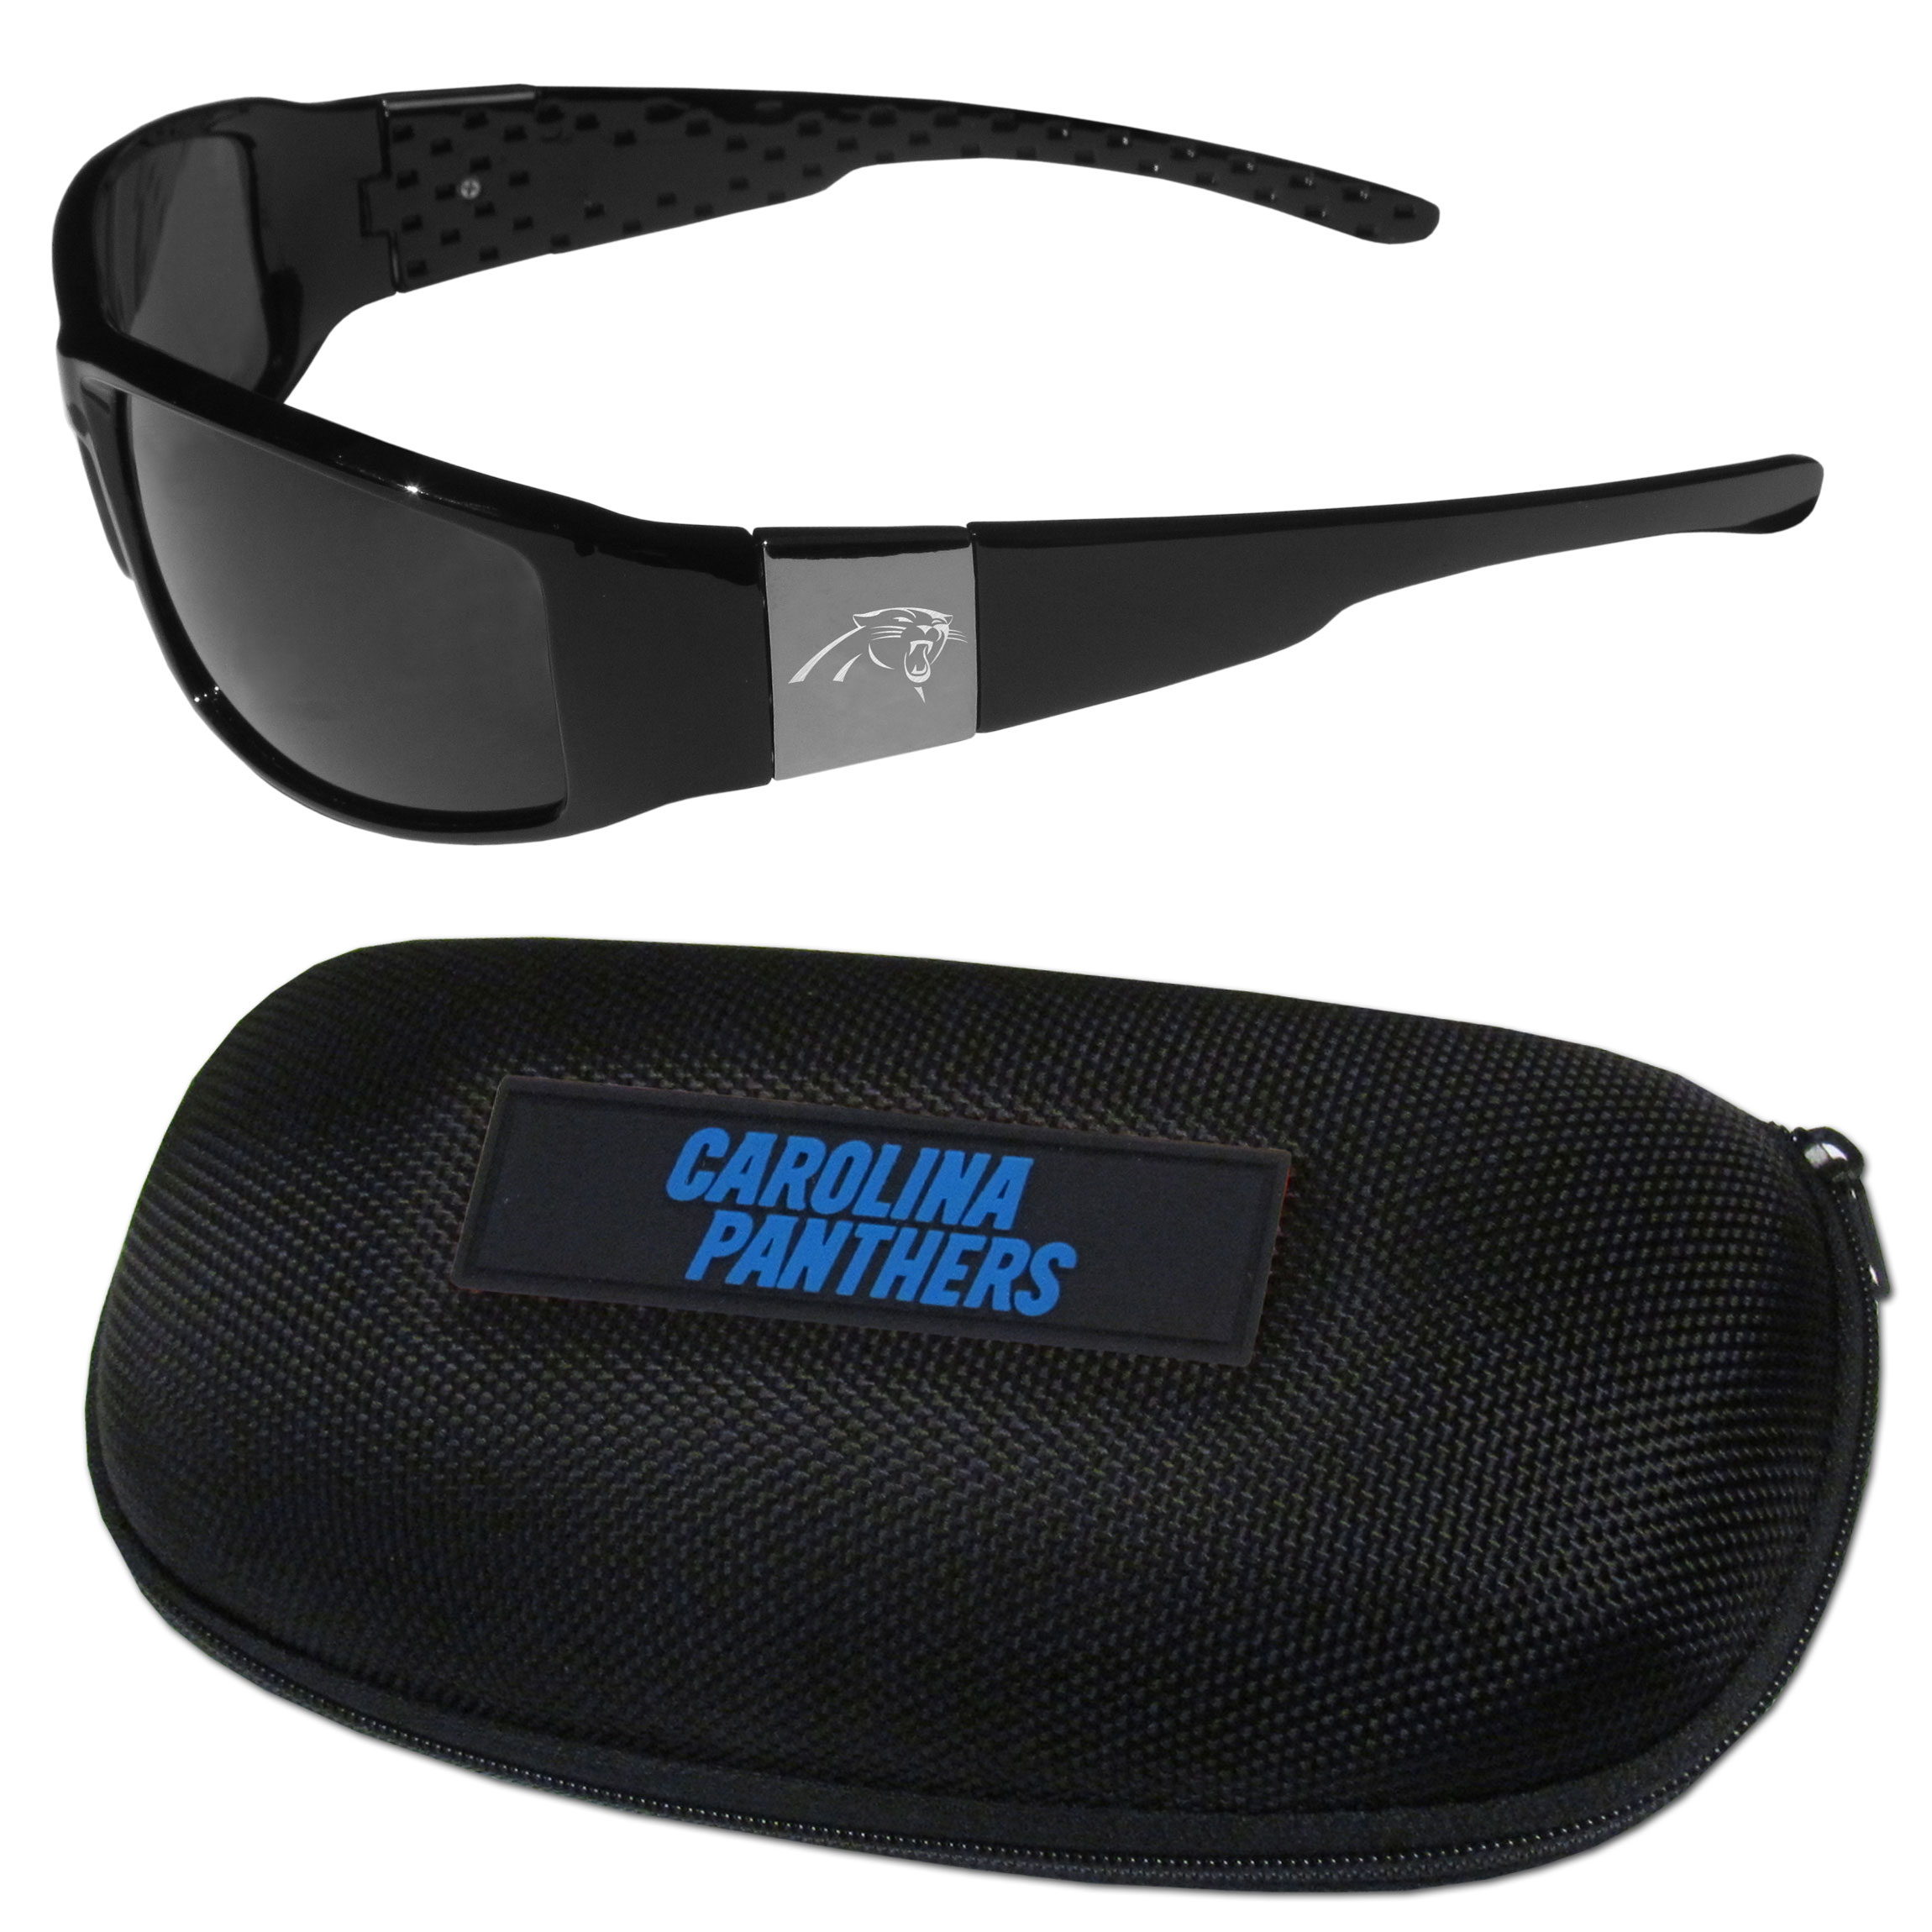 Carolina Panthers Chrome Wrap Sunglasses and Zippered Carrying Case - This set includes our sleek and stylish Carolina Panthers chrome wrap sunglasses and our hard shell, zippered carrying case. The sunglasses feature etched team logos on each arm and 100% UVA/UVB protection. The case features a large and colorful team emblem.